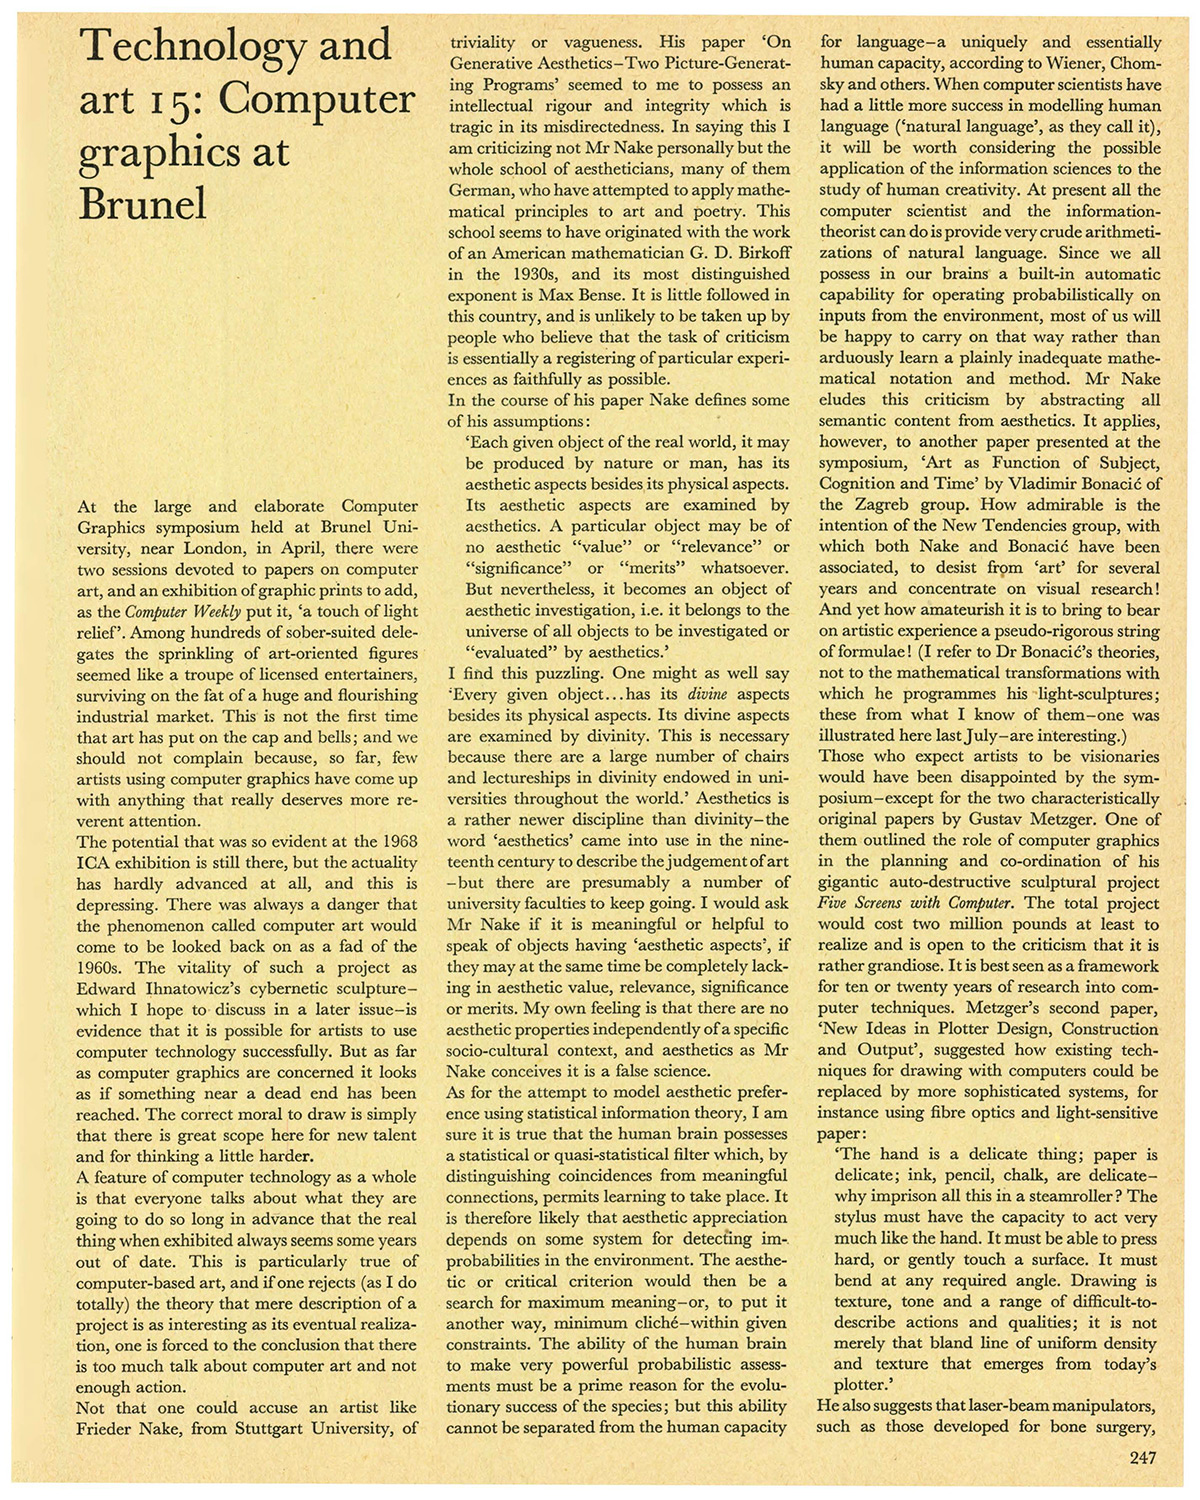 Technology and art 15: Computer graphics at Brunel. Studio International, Vol 179, No 923, June 1970, page 247.